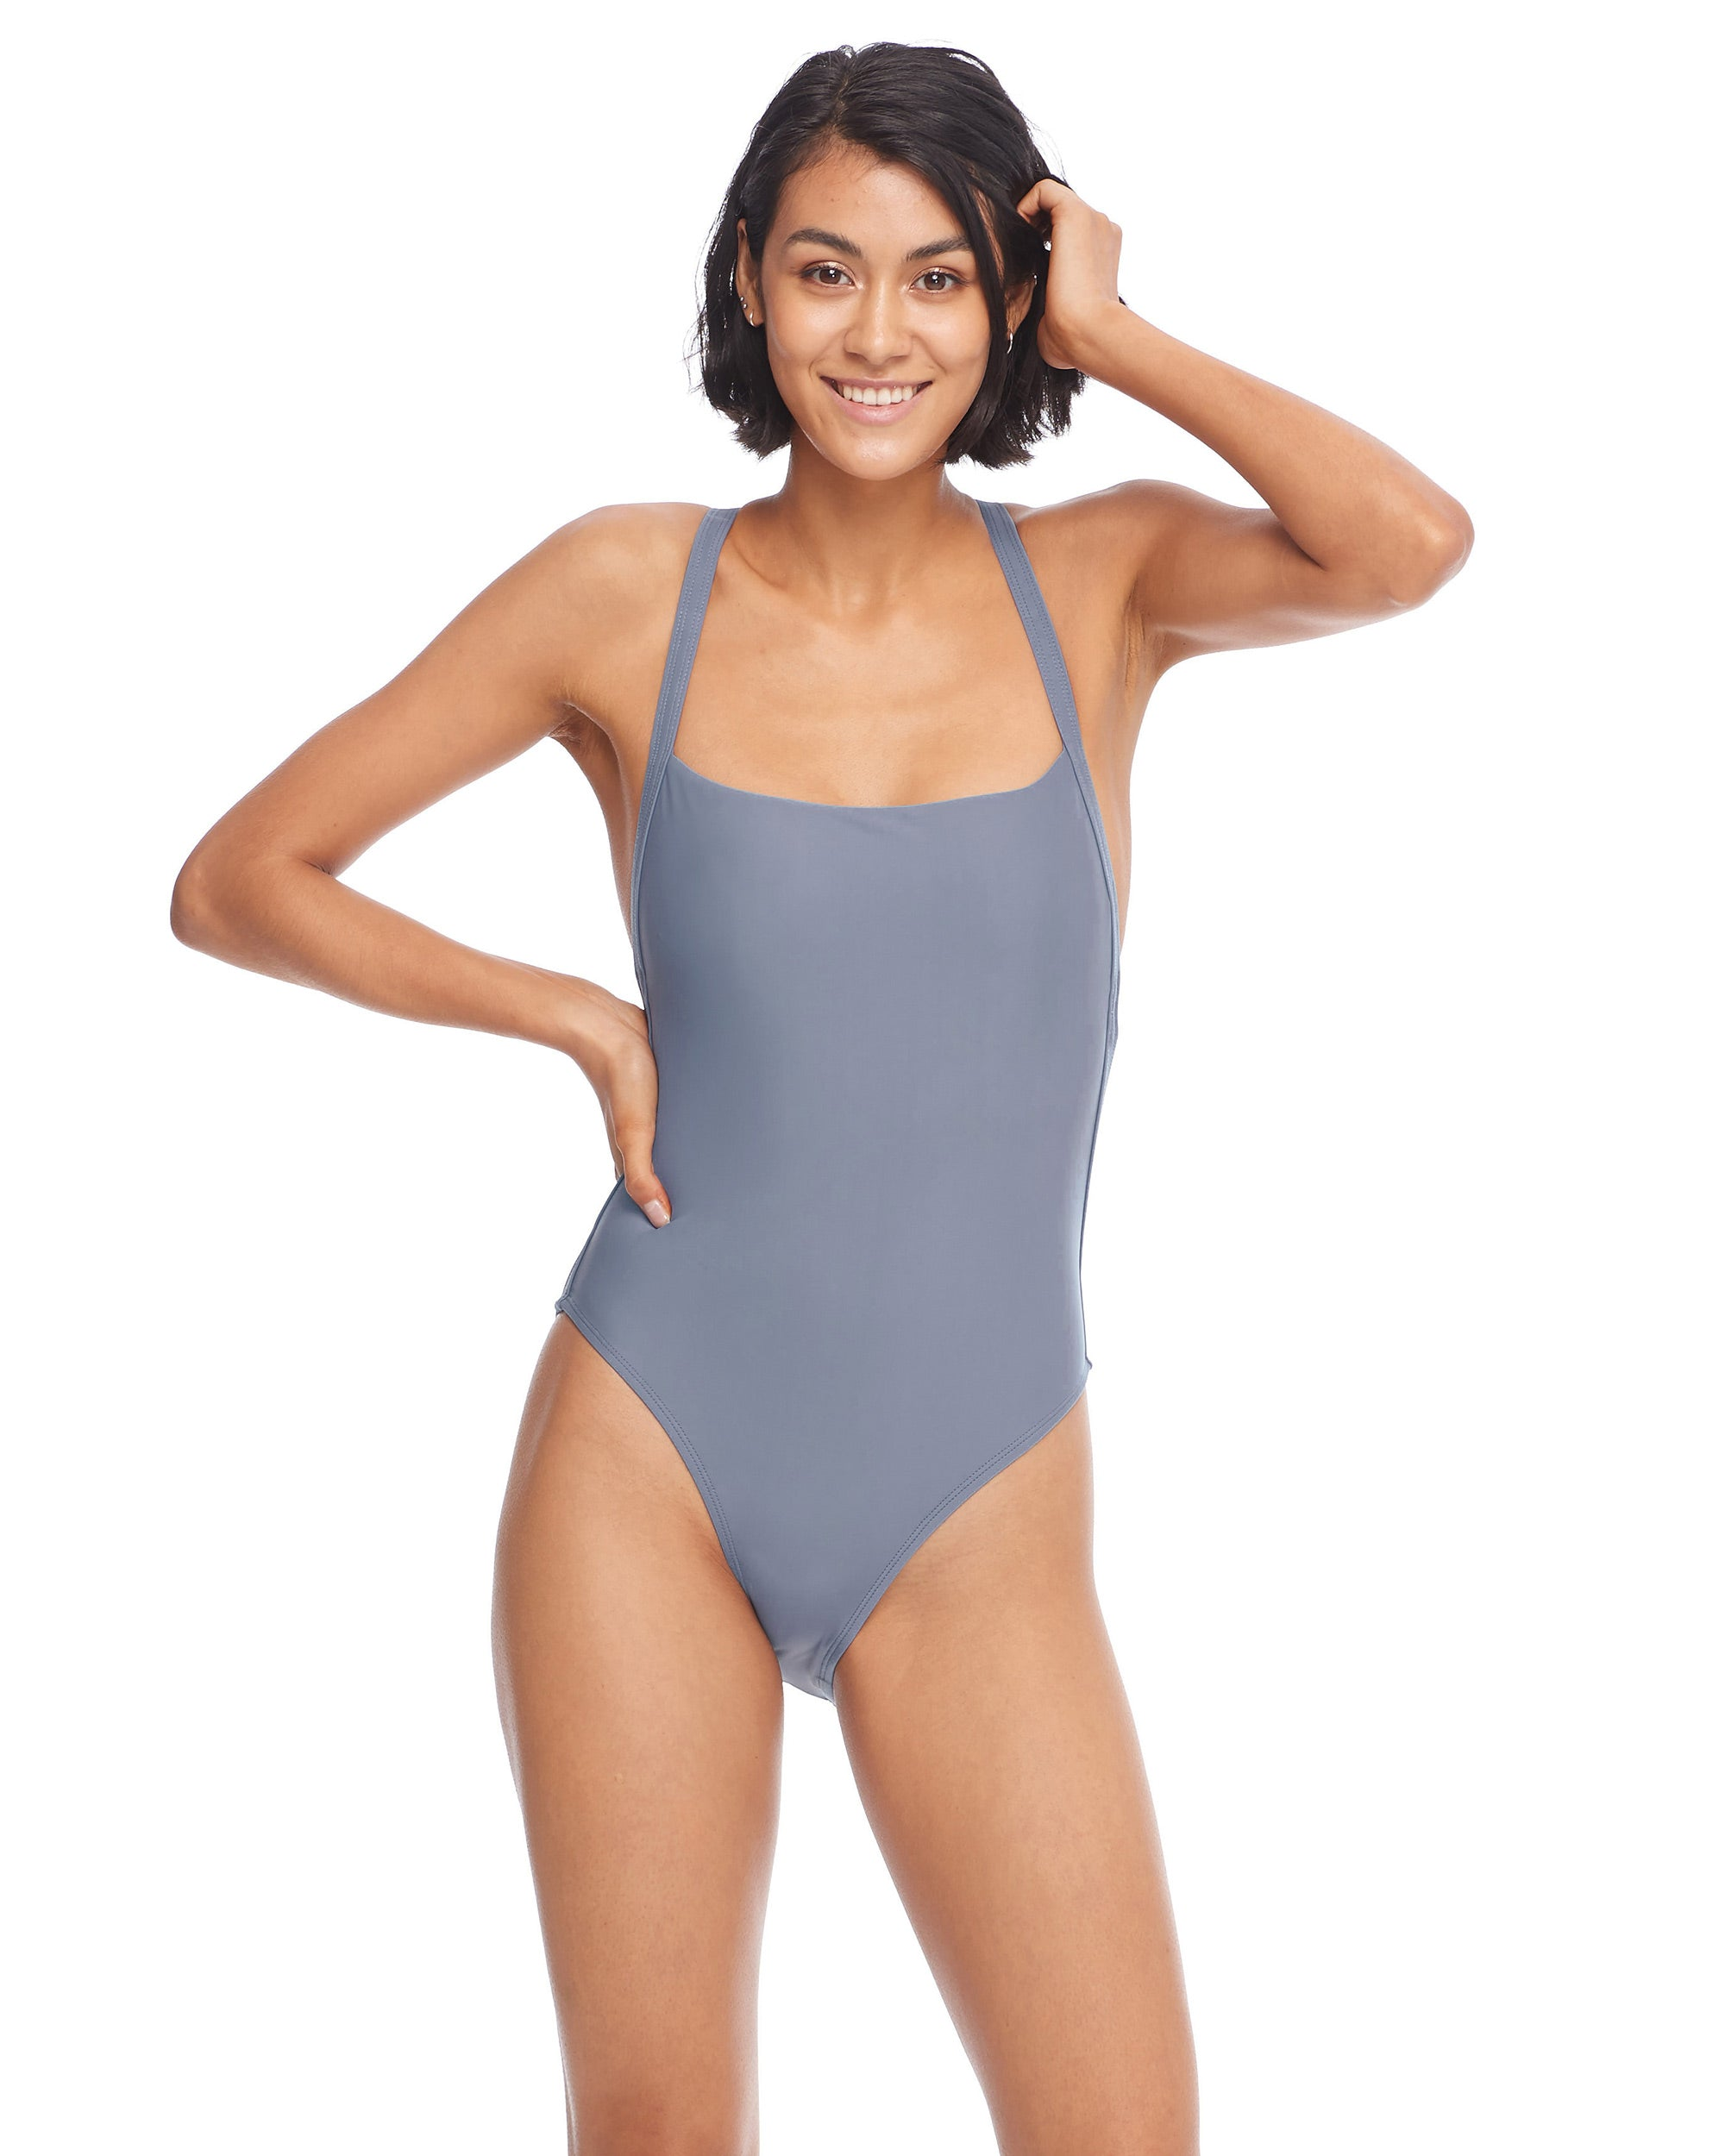 Smoothies Electra One-Piece Swimsuit - Storm